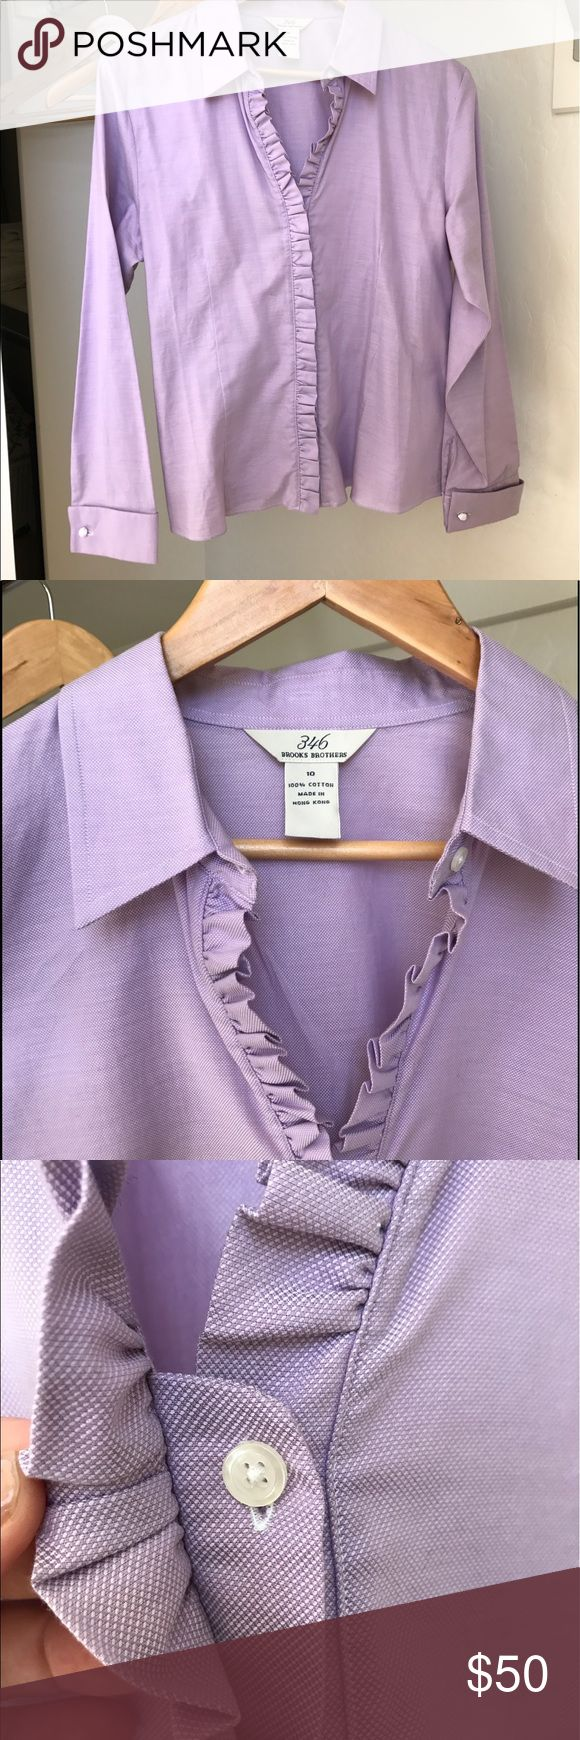 Brooks Brothers Woman's French Cuff dress shirt Really pretty purple woman's Brooks Brothers collared shirt. 100% cotton. French cuffs. I am including the knot cuff links in white. Worn a couple of times Brooks Brothers Tops Button Down Shirts